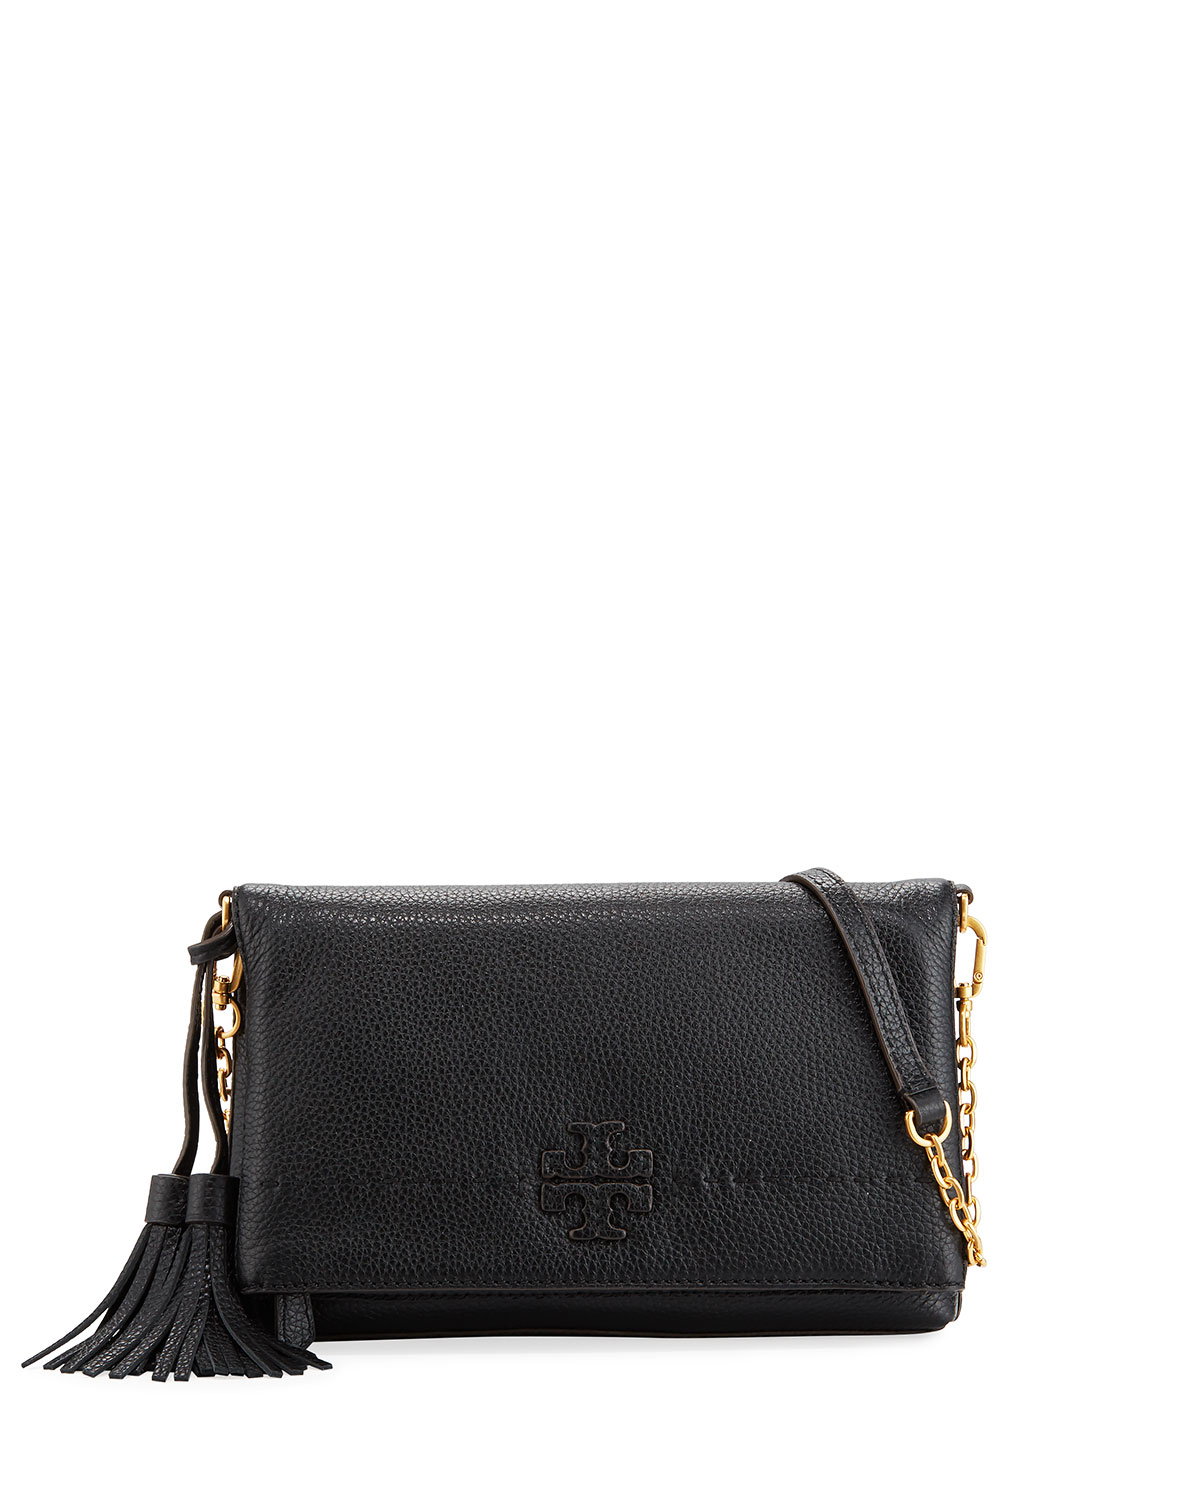 c5816c0a52f0 Tory Burch McGraw Chain Crossbody Bag